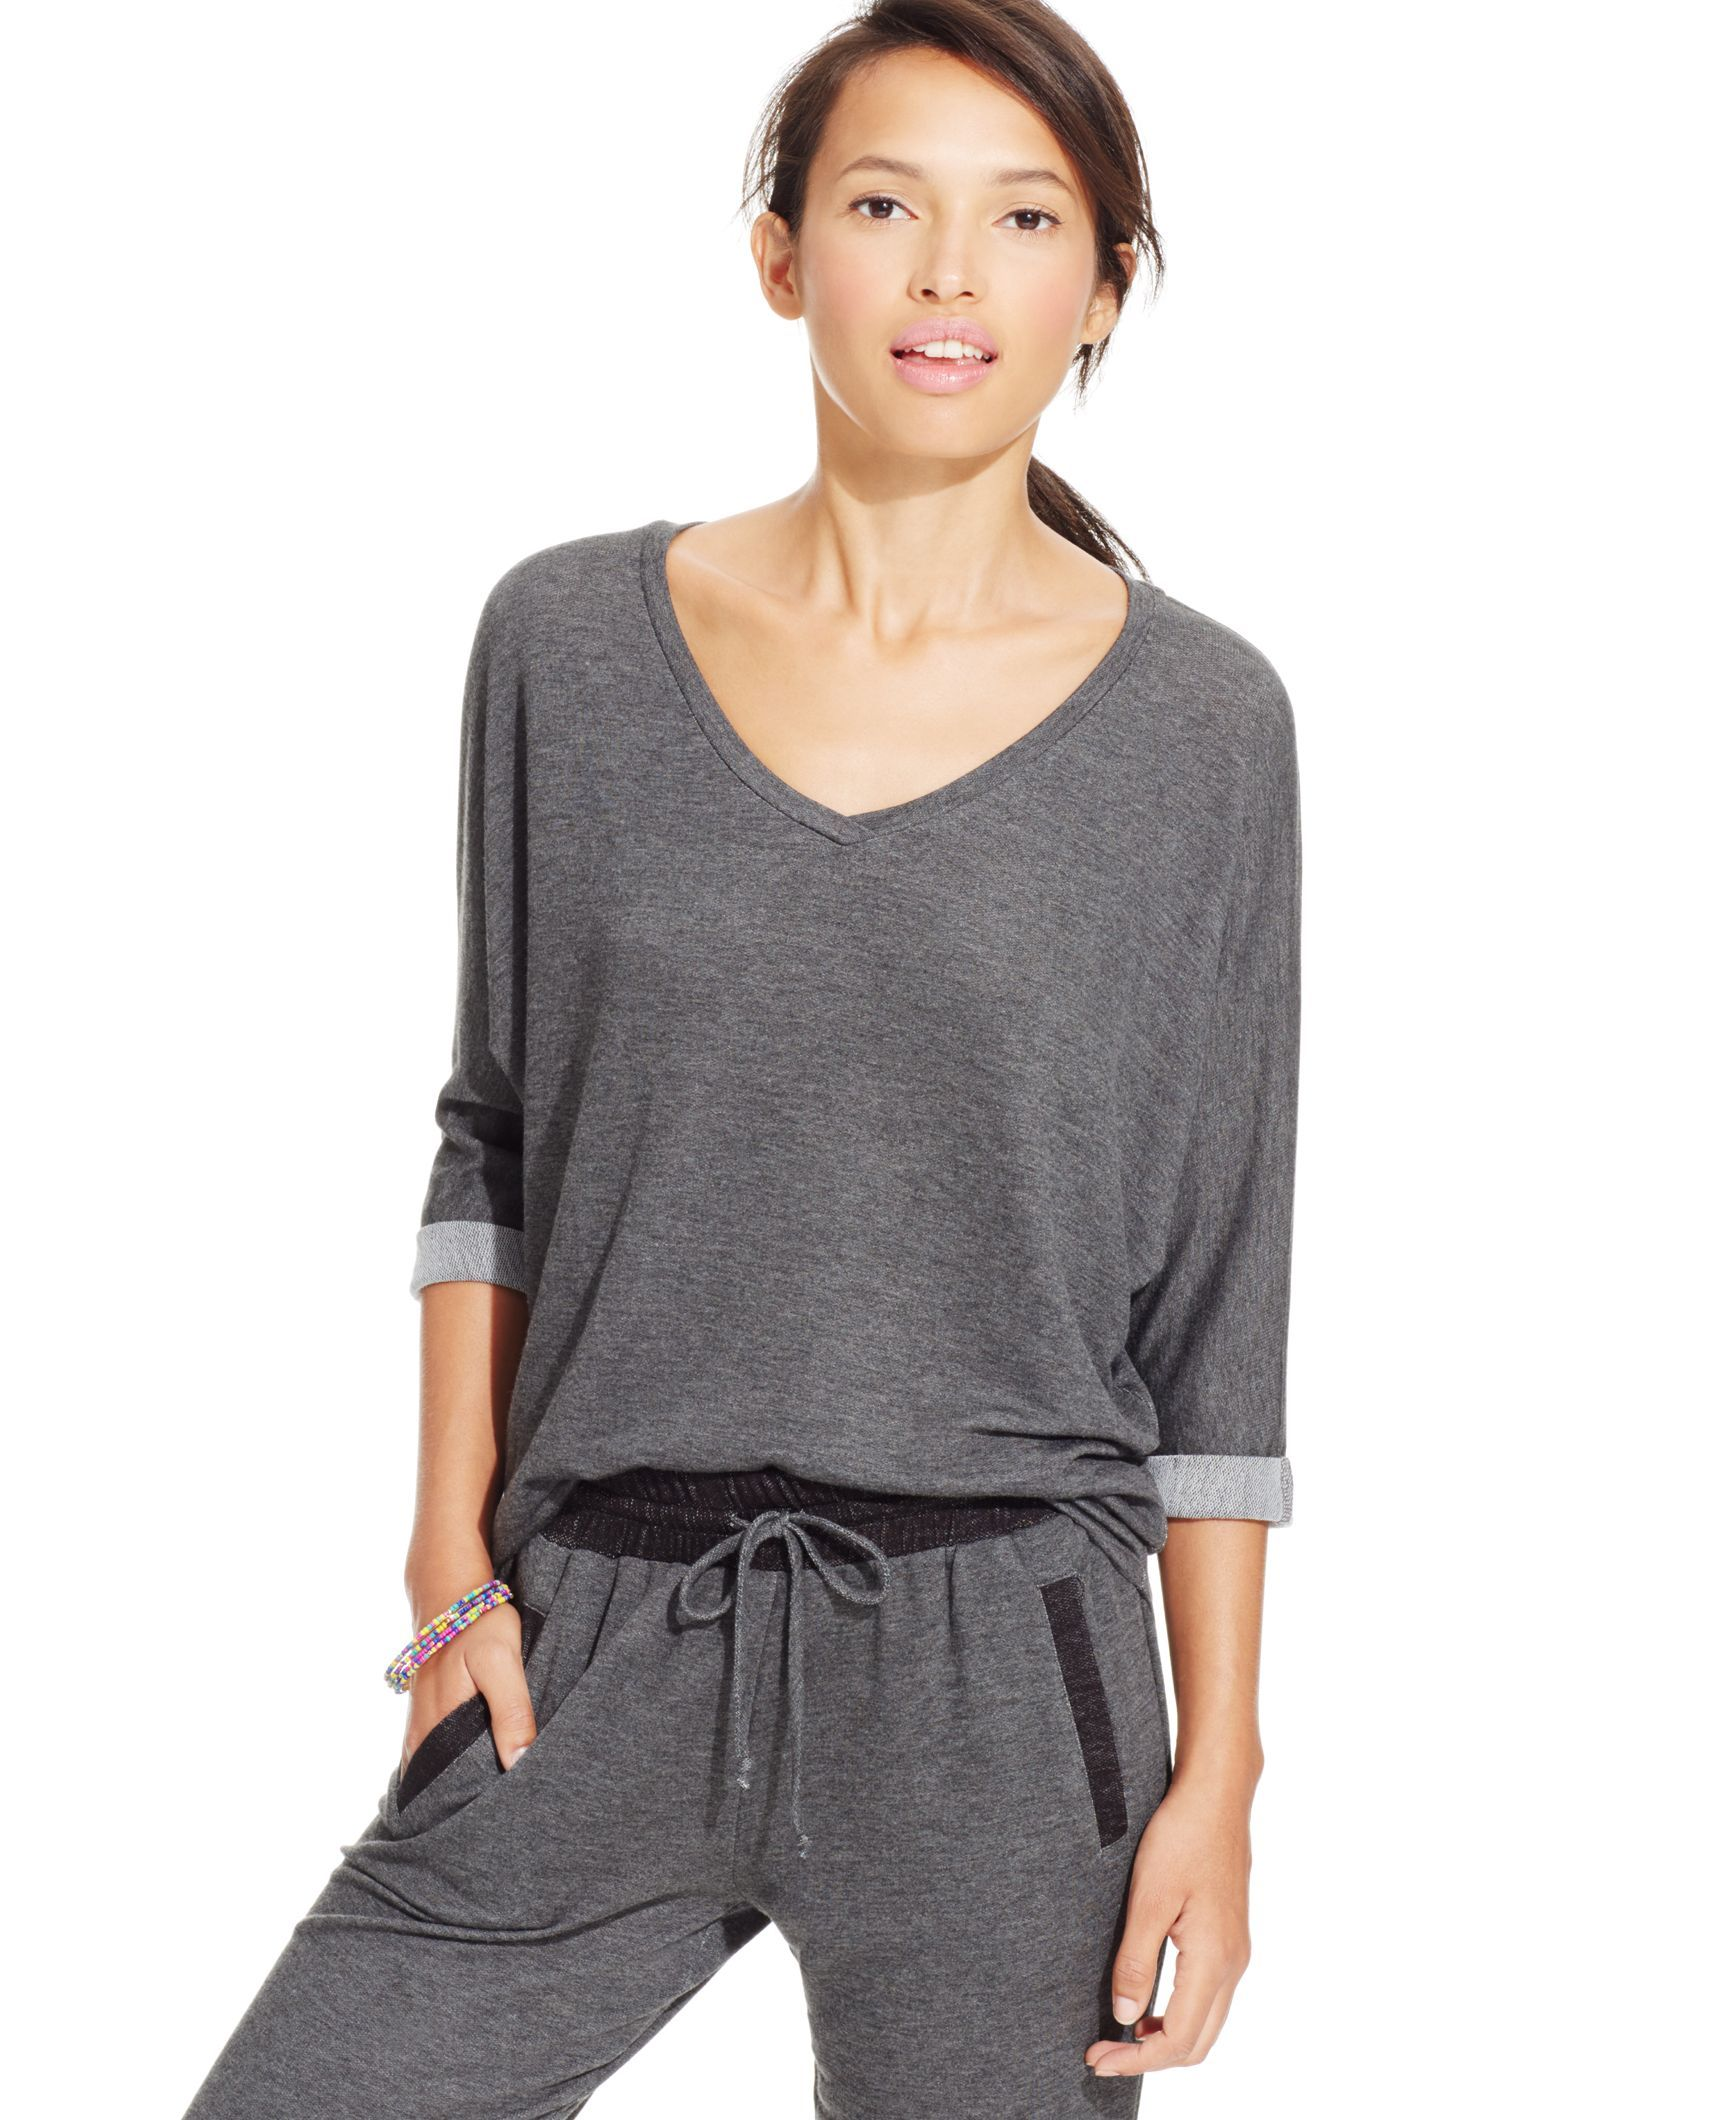 937fd417 Celebrity Pink Juniors' Three-Quarter-Sleeve V-Neck Top   Products ...